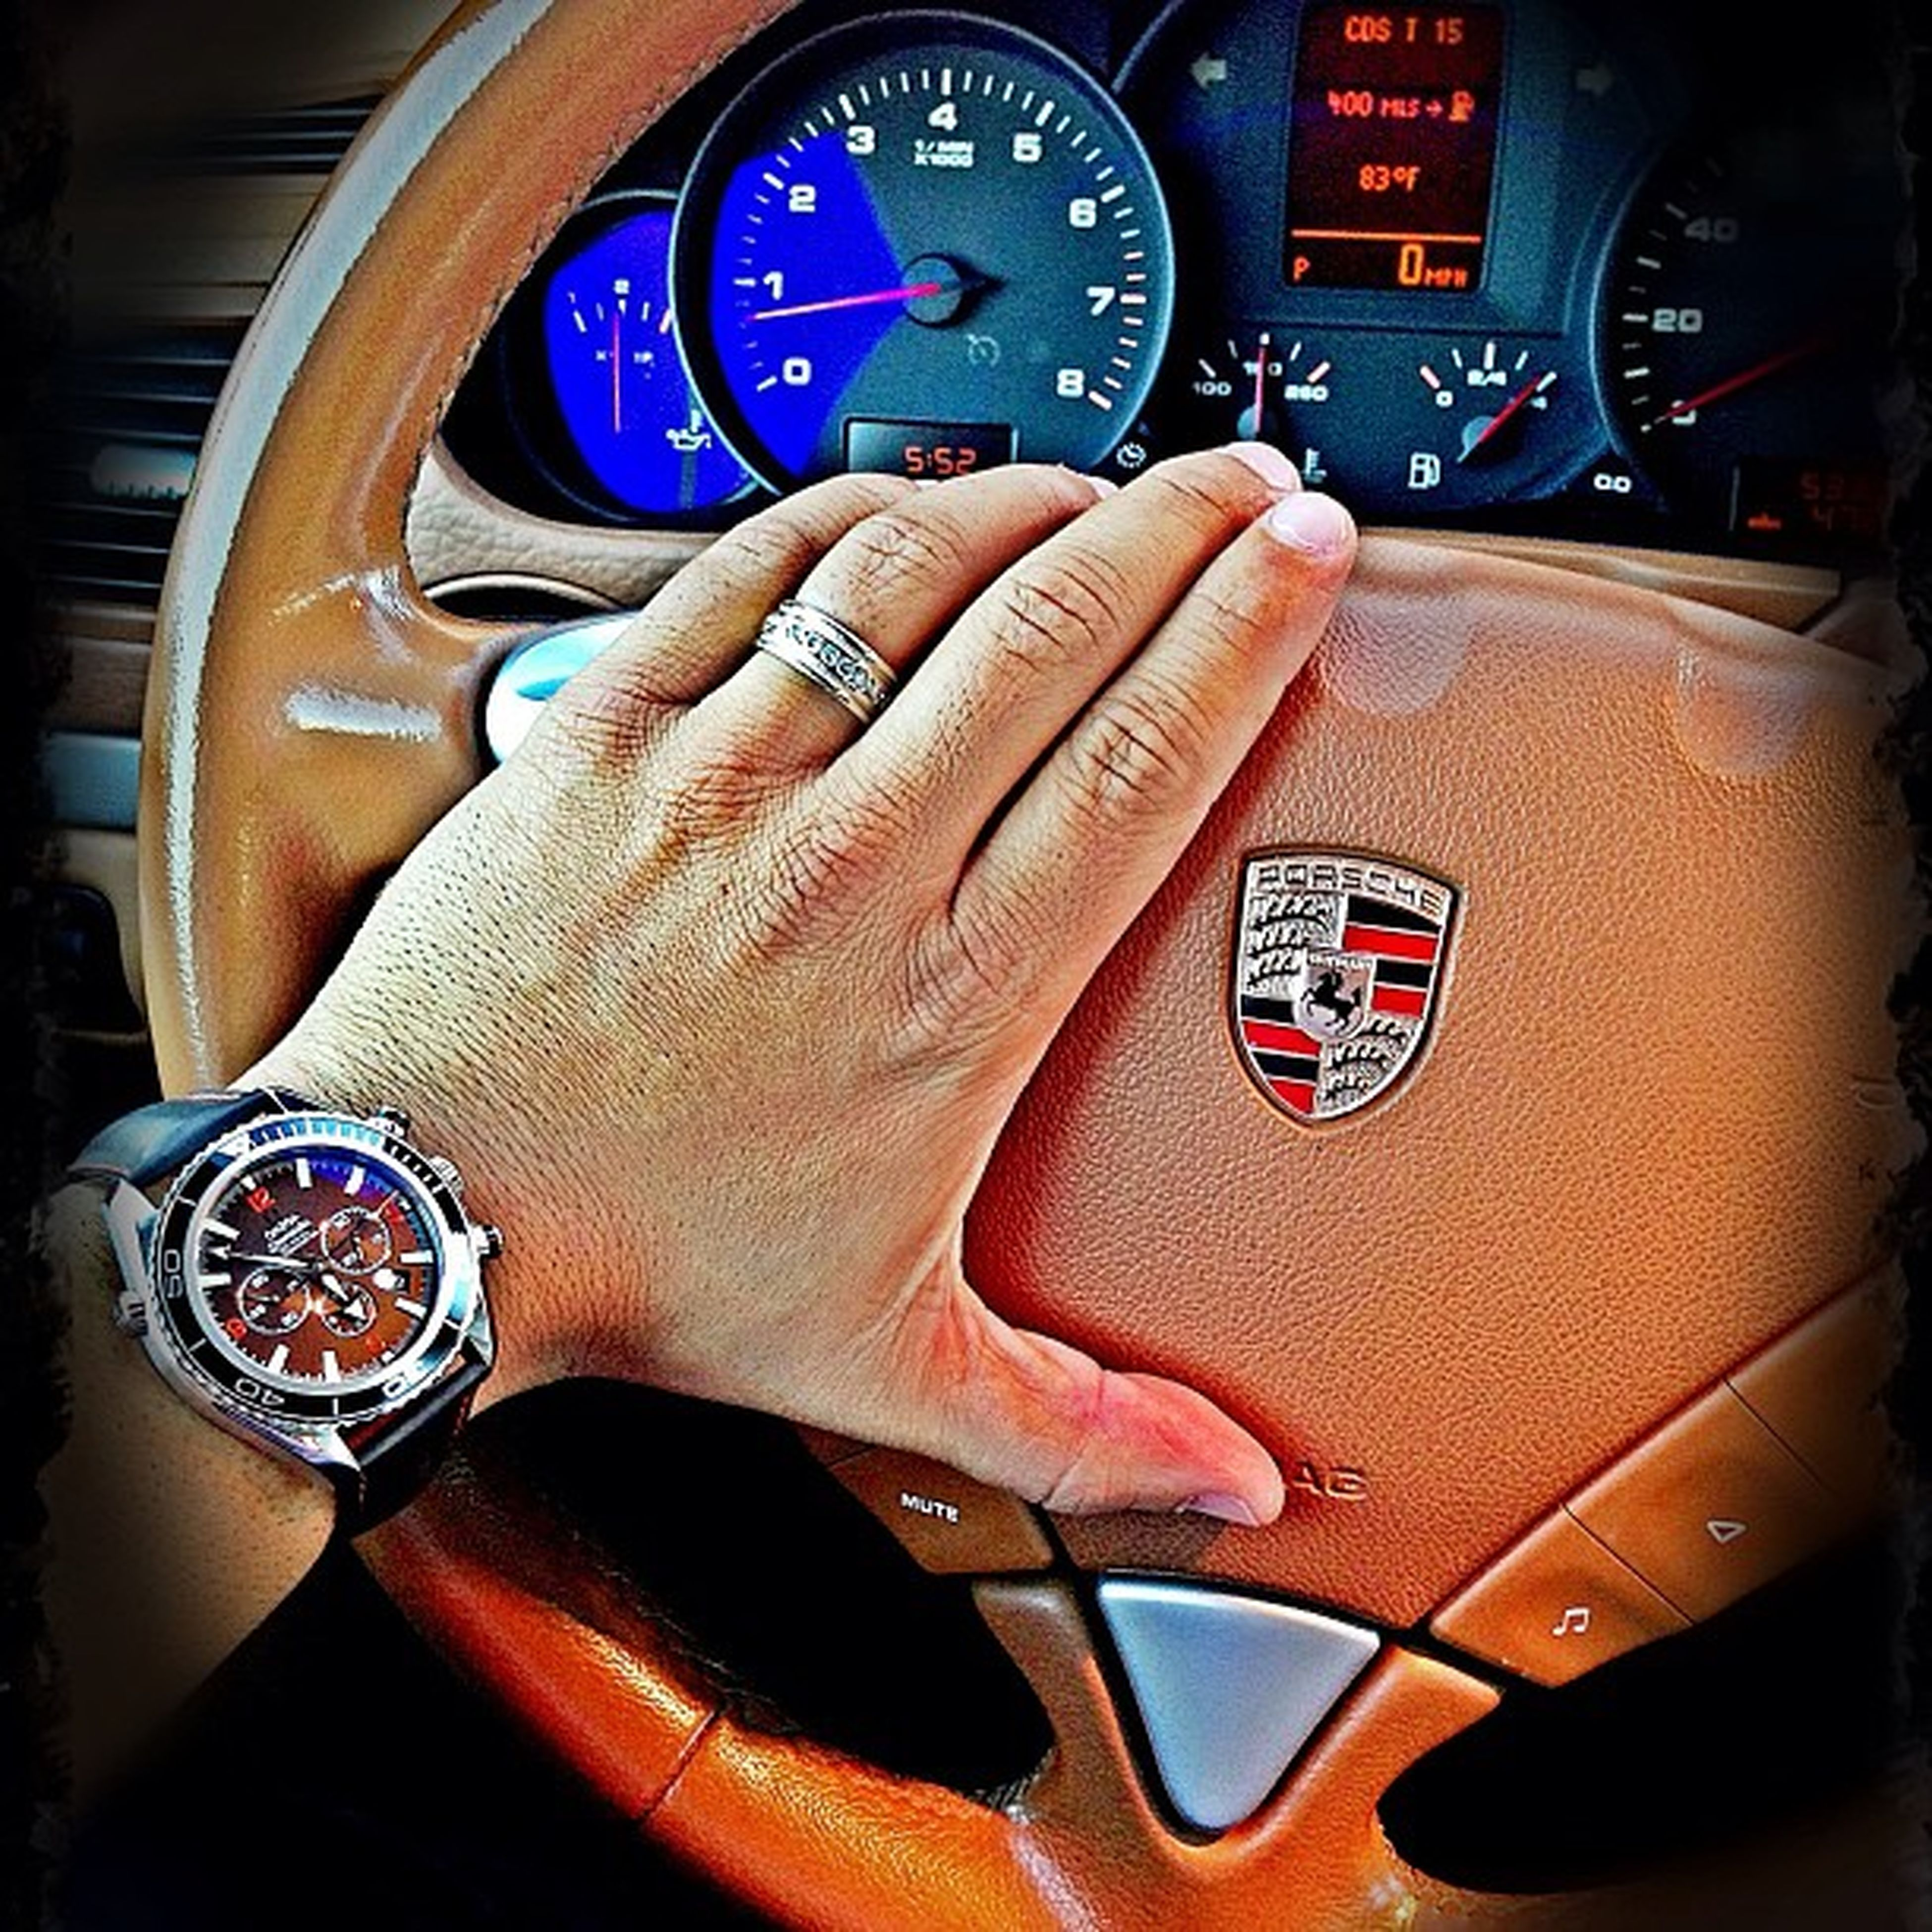 Bout that time, she just feels so right! Porsche Porschesuv Cayenne Cruise cuban youdoyou dannyboy1876 haveaniceday lovely vehicles beast ño nolimit